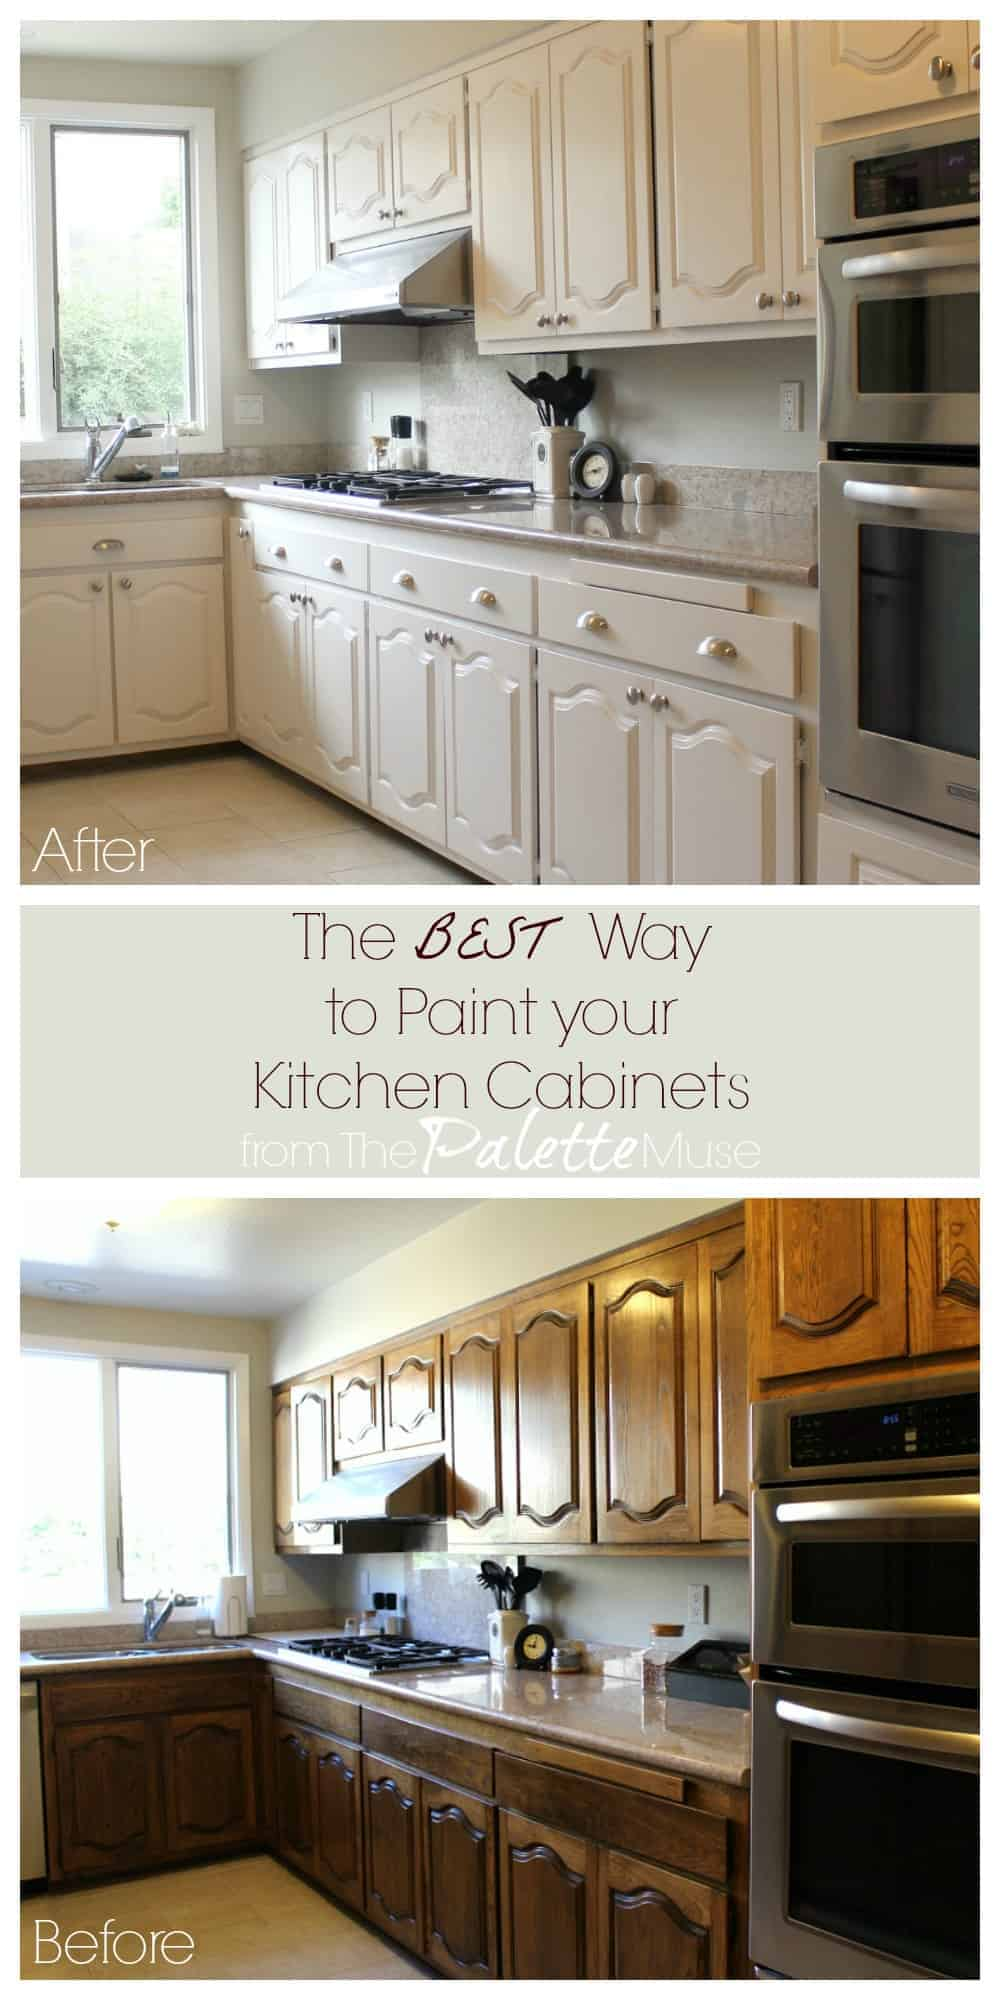 Have You Been Thinking Of Painting Your Kitchen Cabinets Read This First And Save Yourself